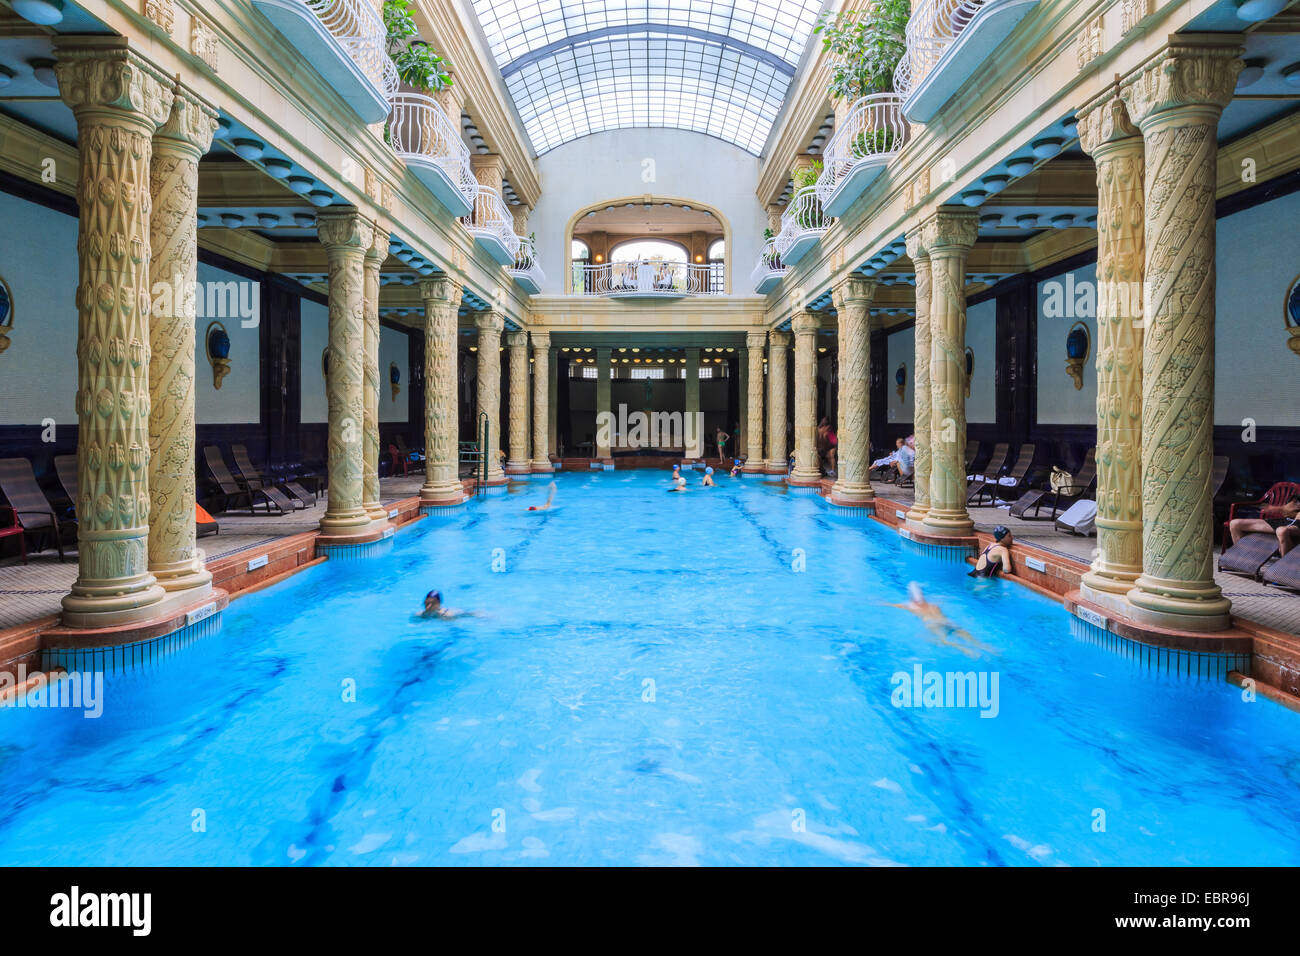 Gellert Thermal Bath. Budapest, Hunagry - Stock Image